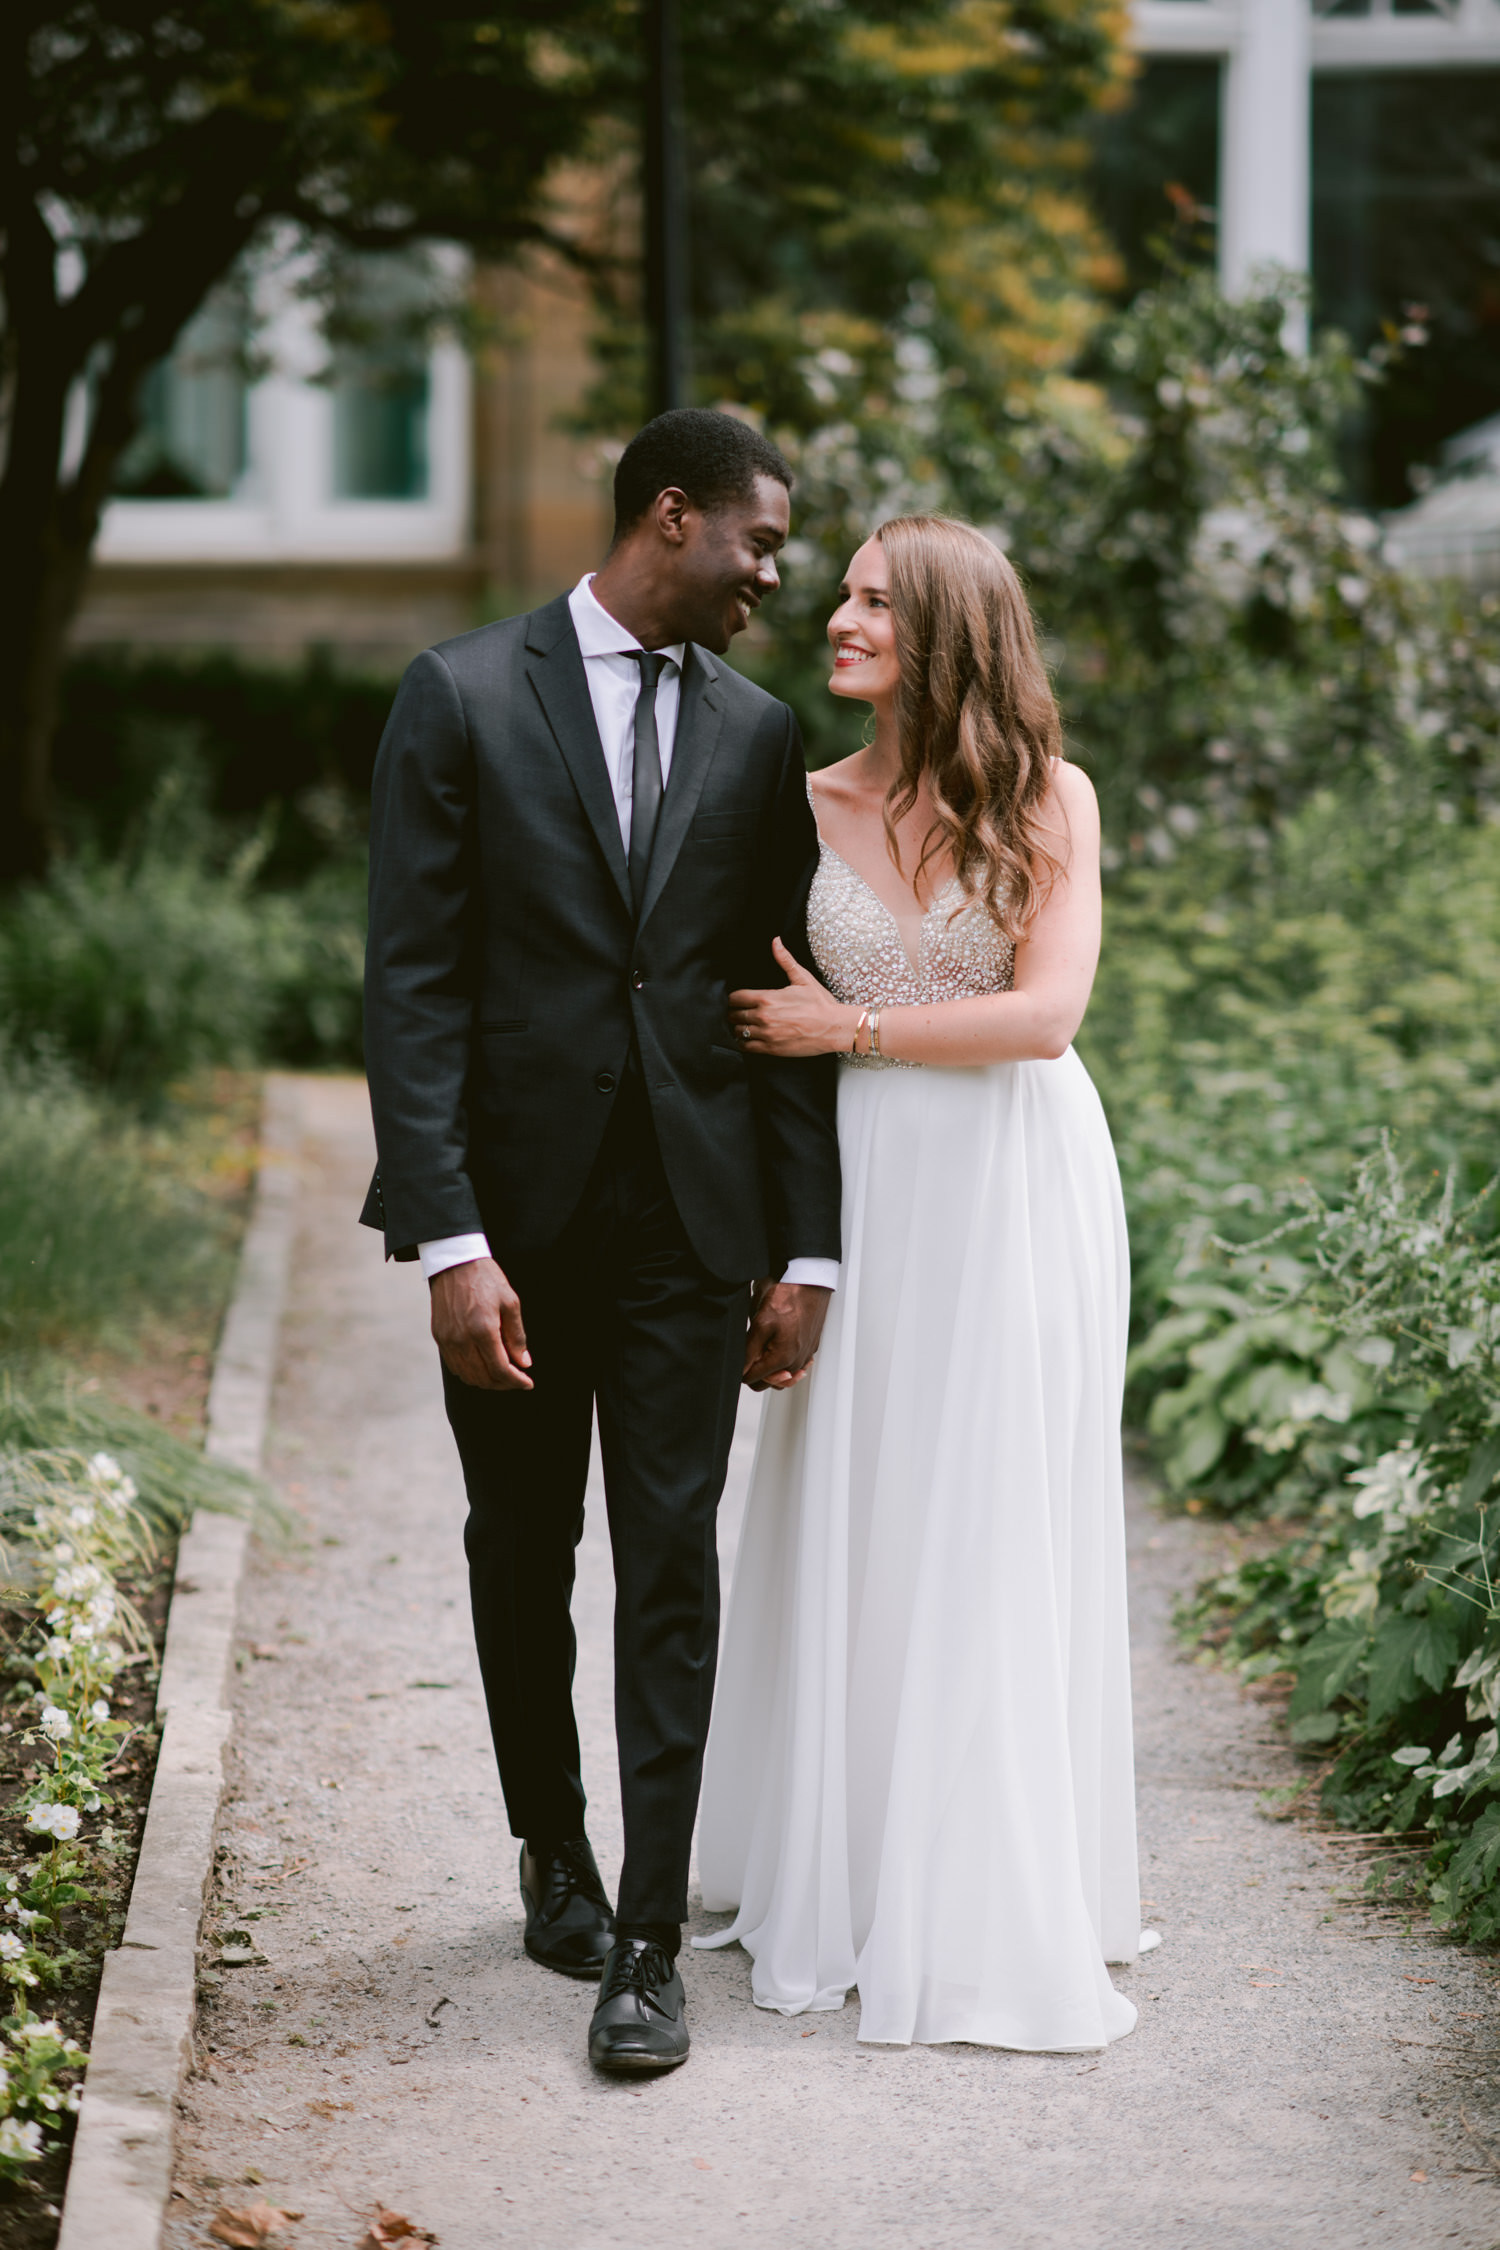 Intimate wedding elopement at Allan Gardens Toronto photography, couple walking to ceremony